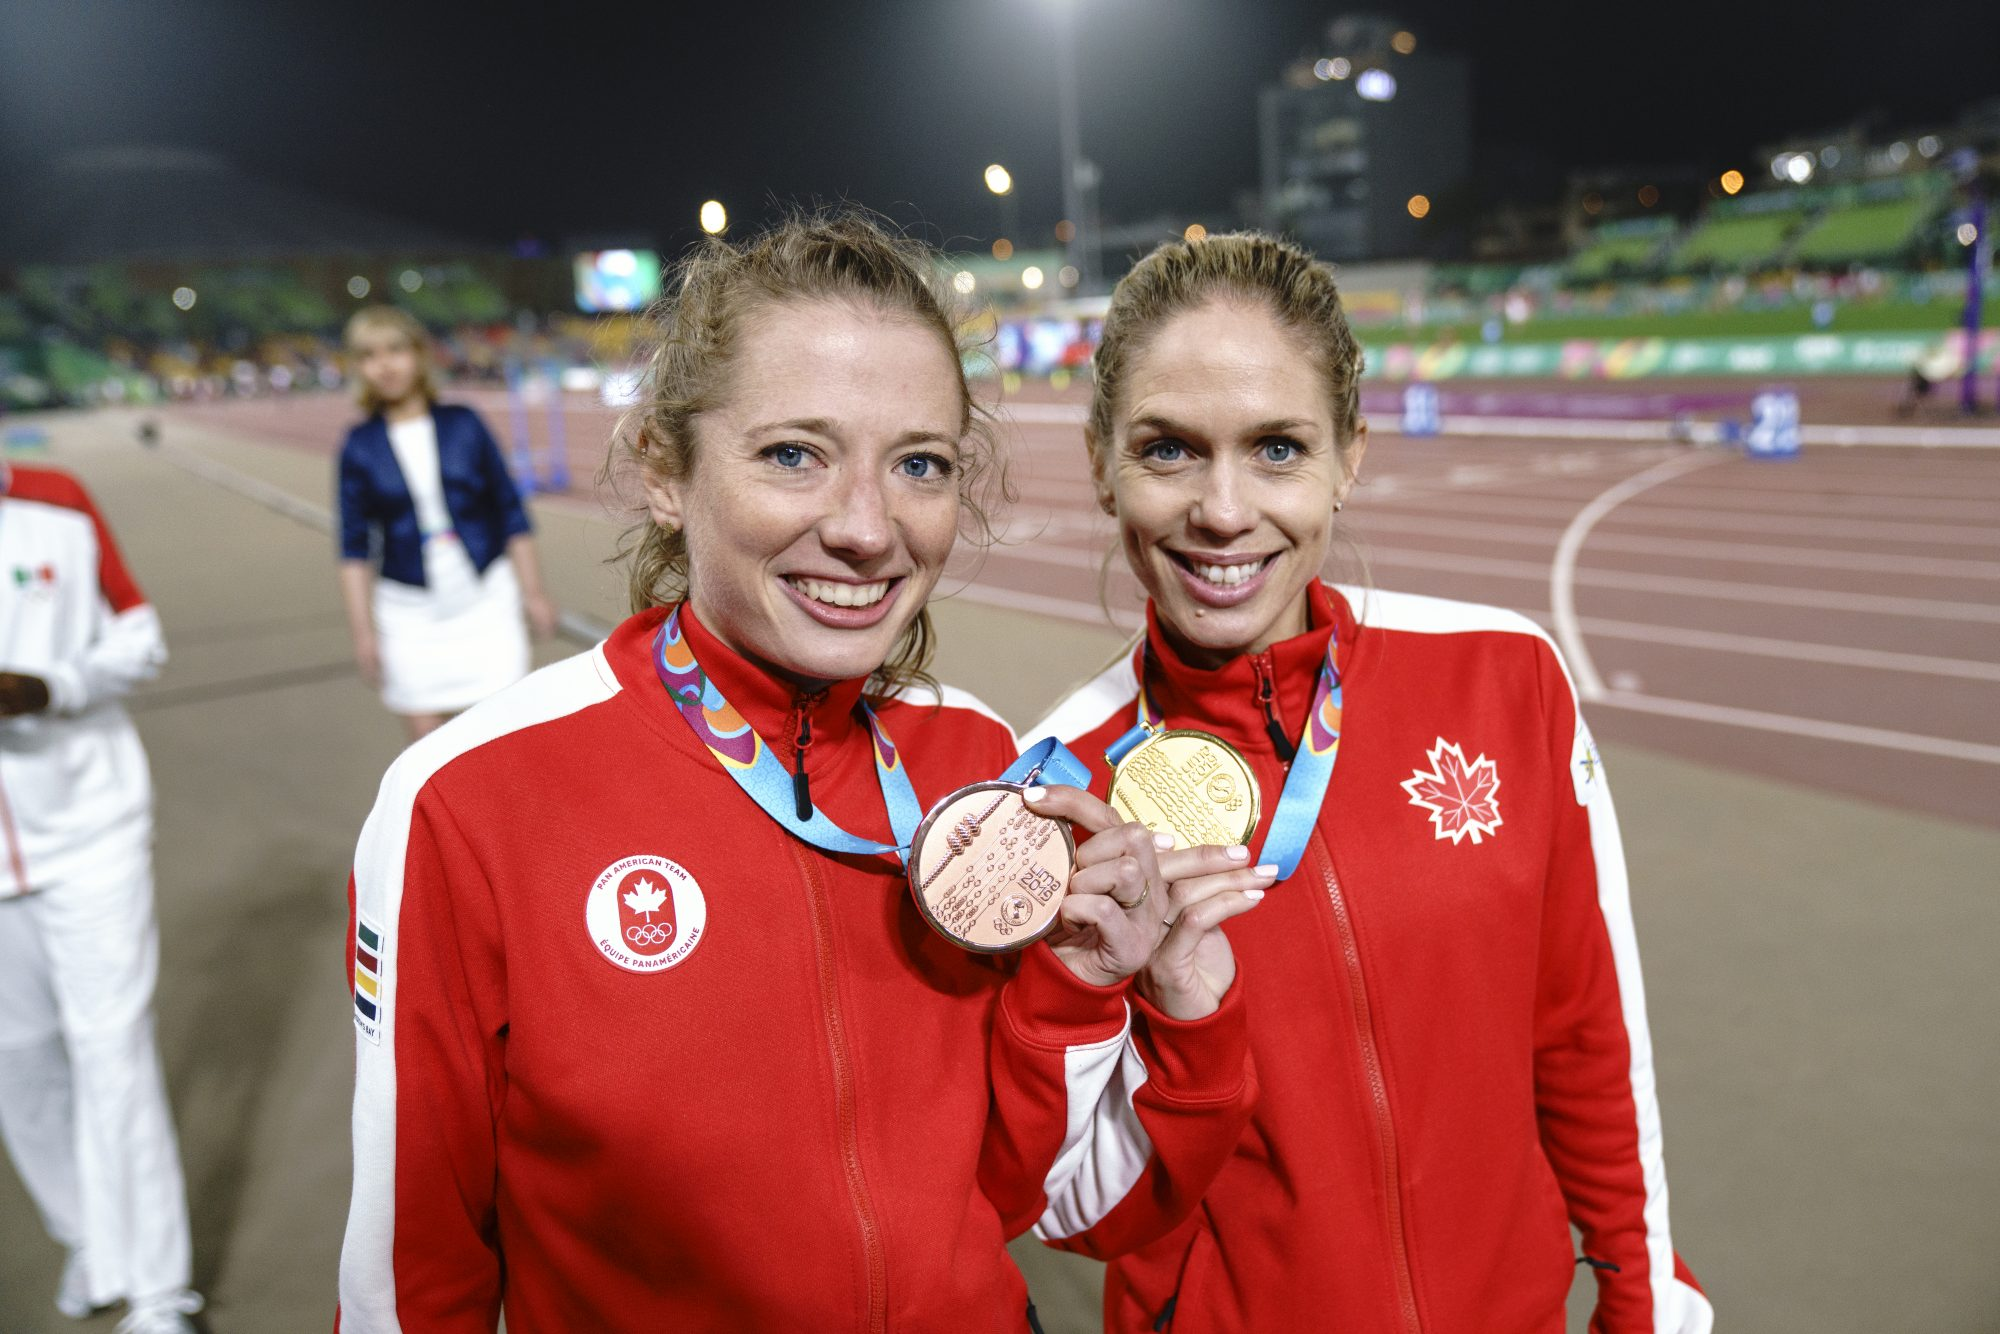 two athletes hold up their medals